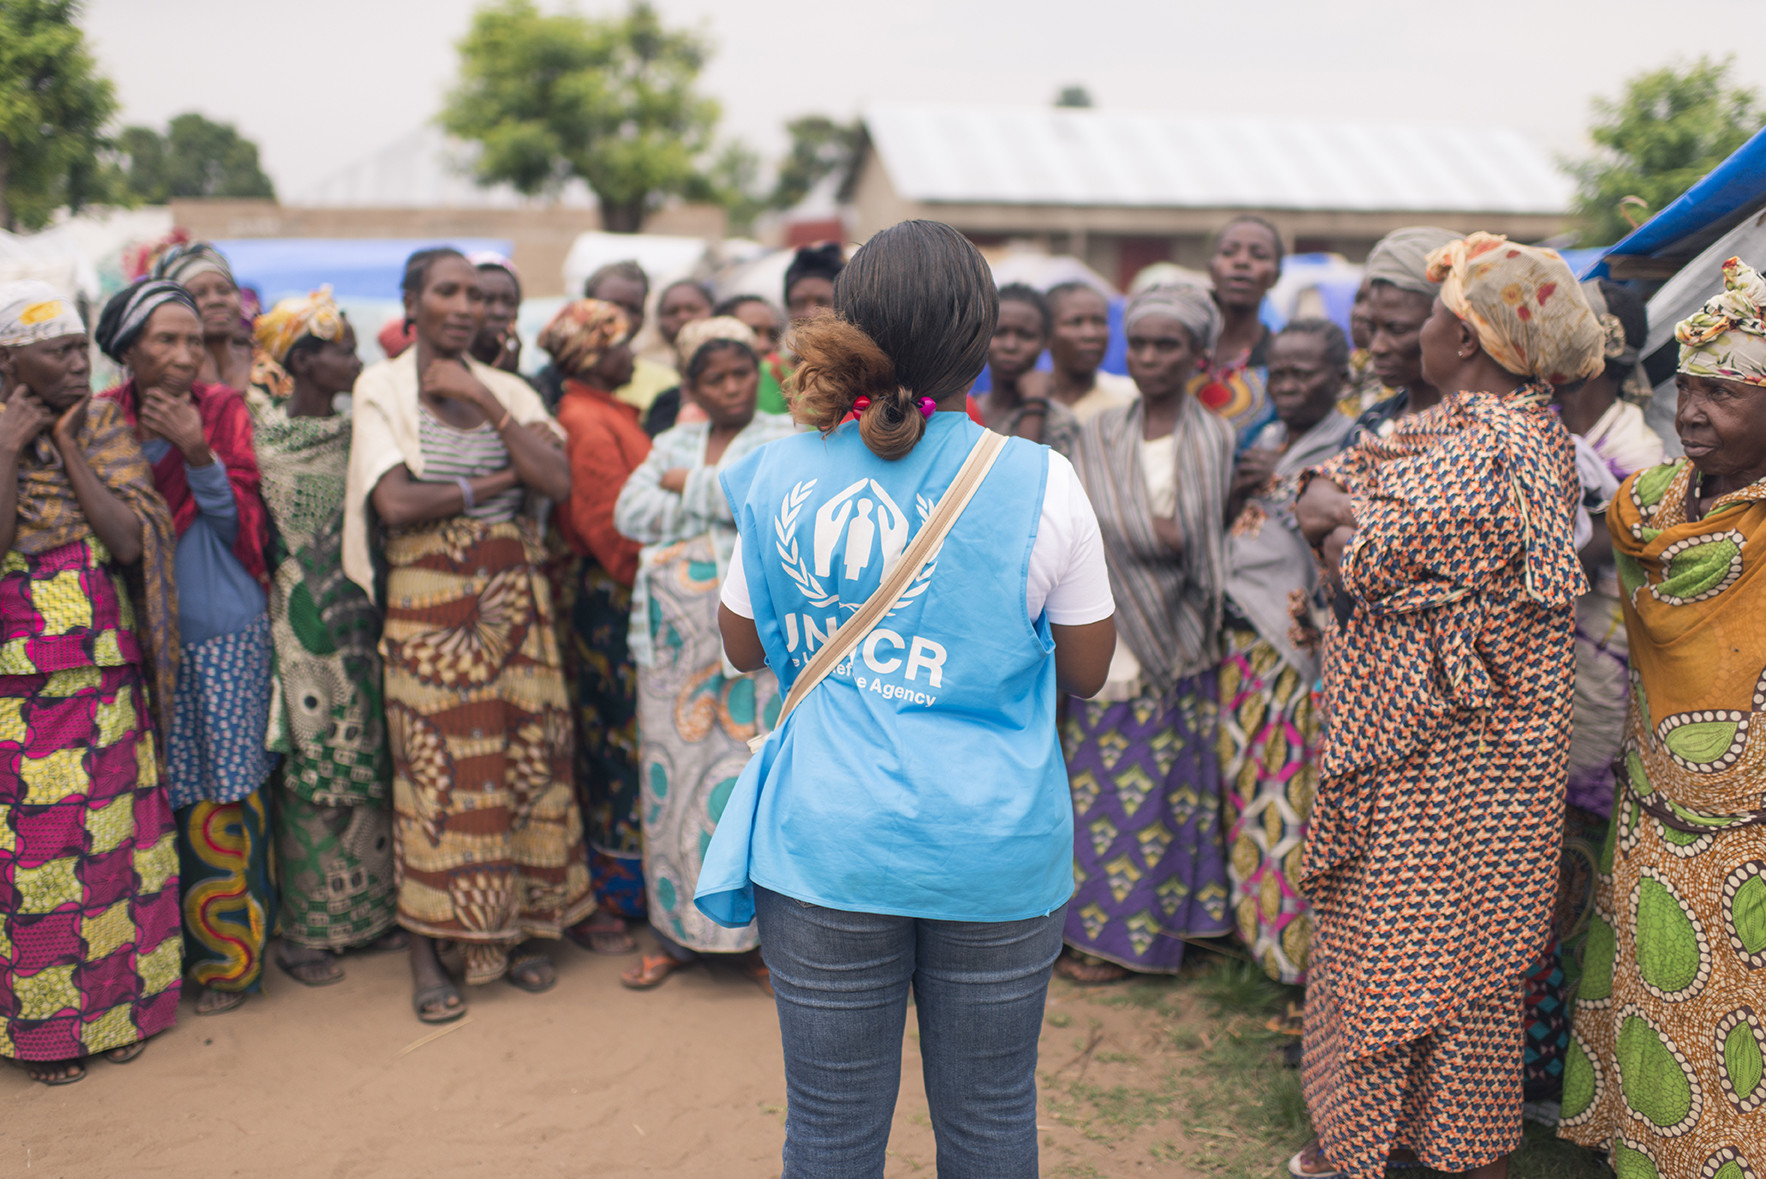 A UNHCR field staff in Kalemie, is gathering IDPs to talk about abducted children in E.P. Moni site, Tanganika province. ; The Democratic Republic of Congo's Tanganyika Province has experienced massive internal displacement, caused by inter-ethnic conflict and fighting between armed groups and the Army.  As of 30 November 2017, over 700,000 people were internally displaced in the province. The displaced often lived in makeshift sites or public buildings such as schools, receiving very little humanitarian aid.